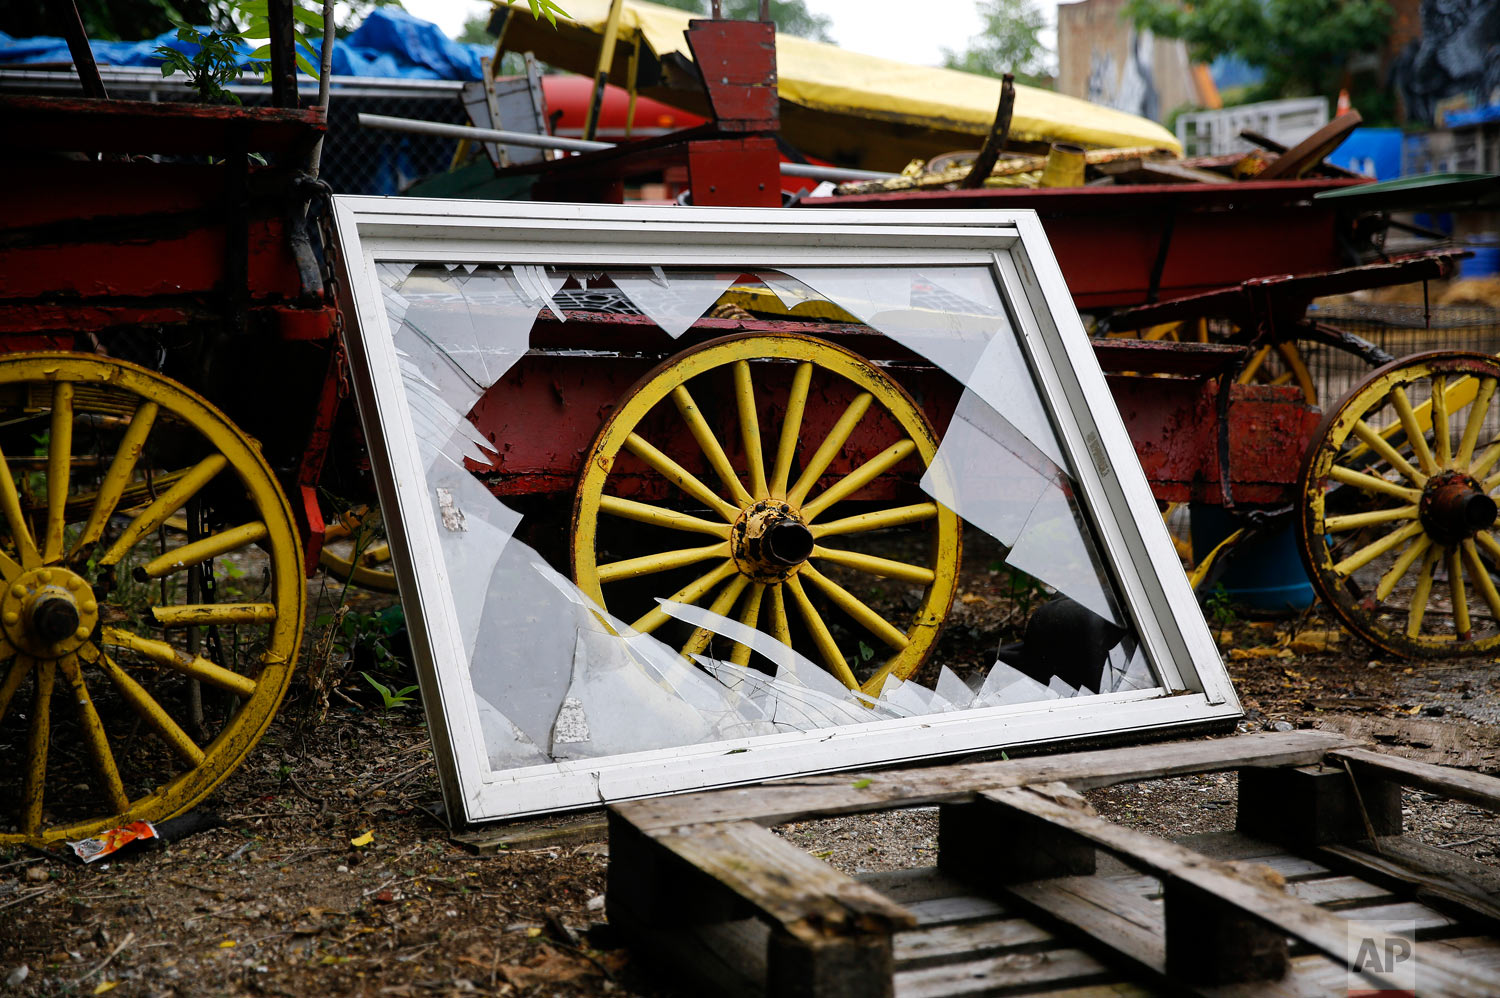 A broken window rests against a disused horse-drawn cart at an arabber stable in Baltimore in this June 18, 2018, photo. (AP Photo/Patrick Semansky)